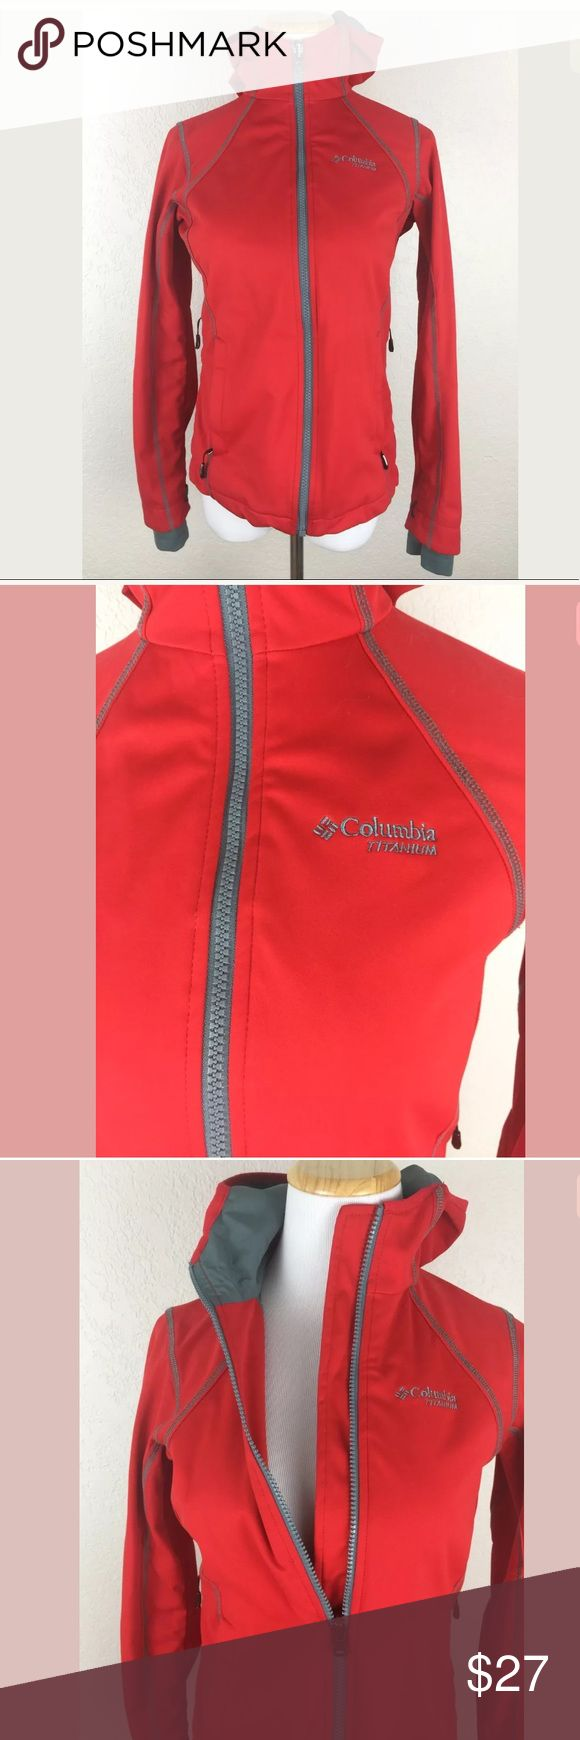 Columbia titanium Omni heat dry thermal jacket COLUMBIA WOMANS RED ZIP UP JACKET  IM PRETTY SURE THIS IS PART OF A 2 PART JACKET  BUT ONE IS MISSING  THIS IS IN GREAT SHAPE AND CAN BE WORN ALONE NO PROBLEM  COLUMBIA TITANIUM  OMNI SHIELD  OMNI HEAT  SILVER LINED INSIDE  SIDES UNZIP FOR AIR FLOW  THUMB HOLES IN ARMS  EXCELLENT CONDITION  CHEST 17 IN  SHOULDER TO SEAM 24 IN Columbia Jackets & Coats Utility Jackets